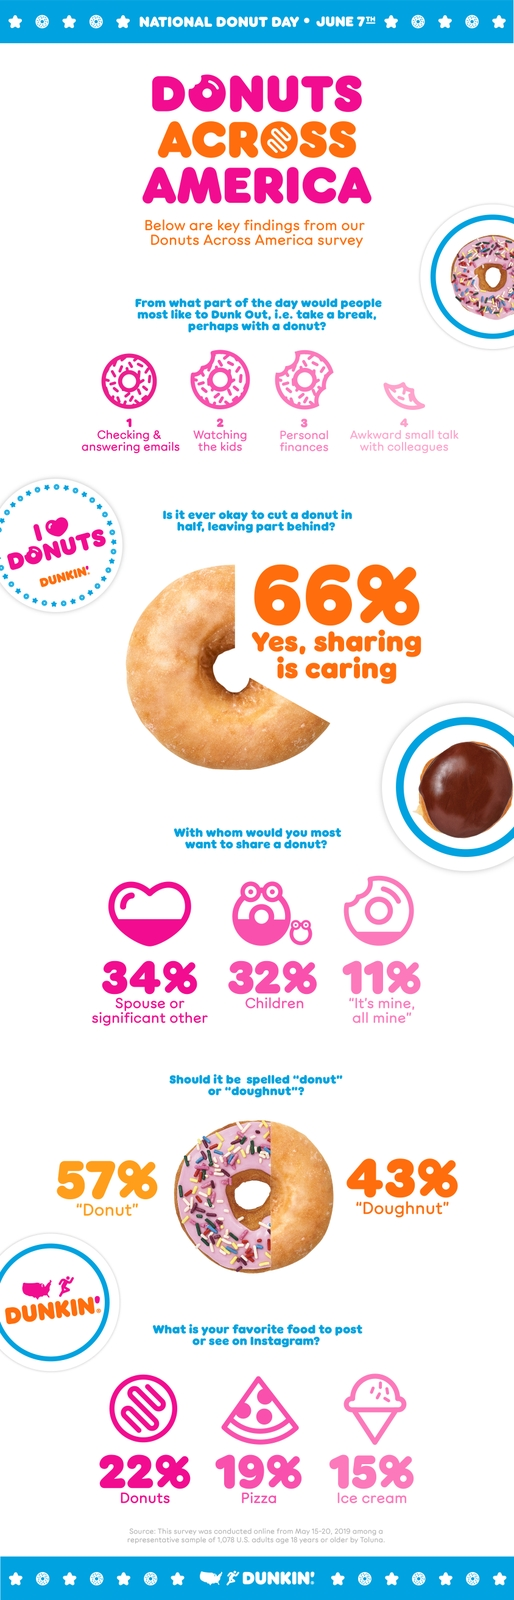 Donuts Across America Survey Infographic